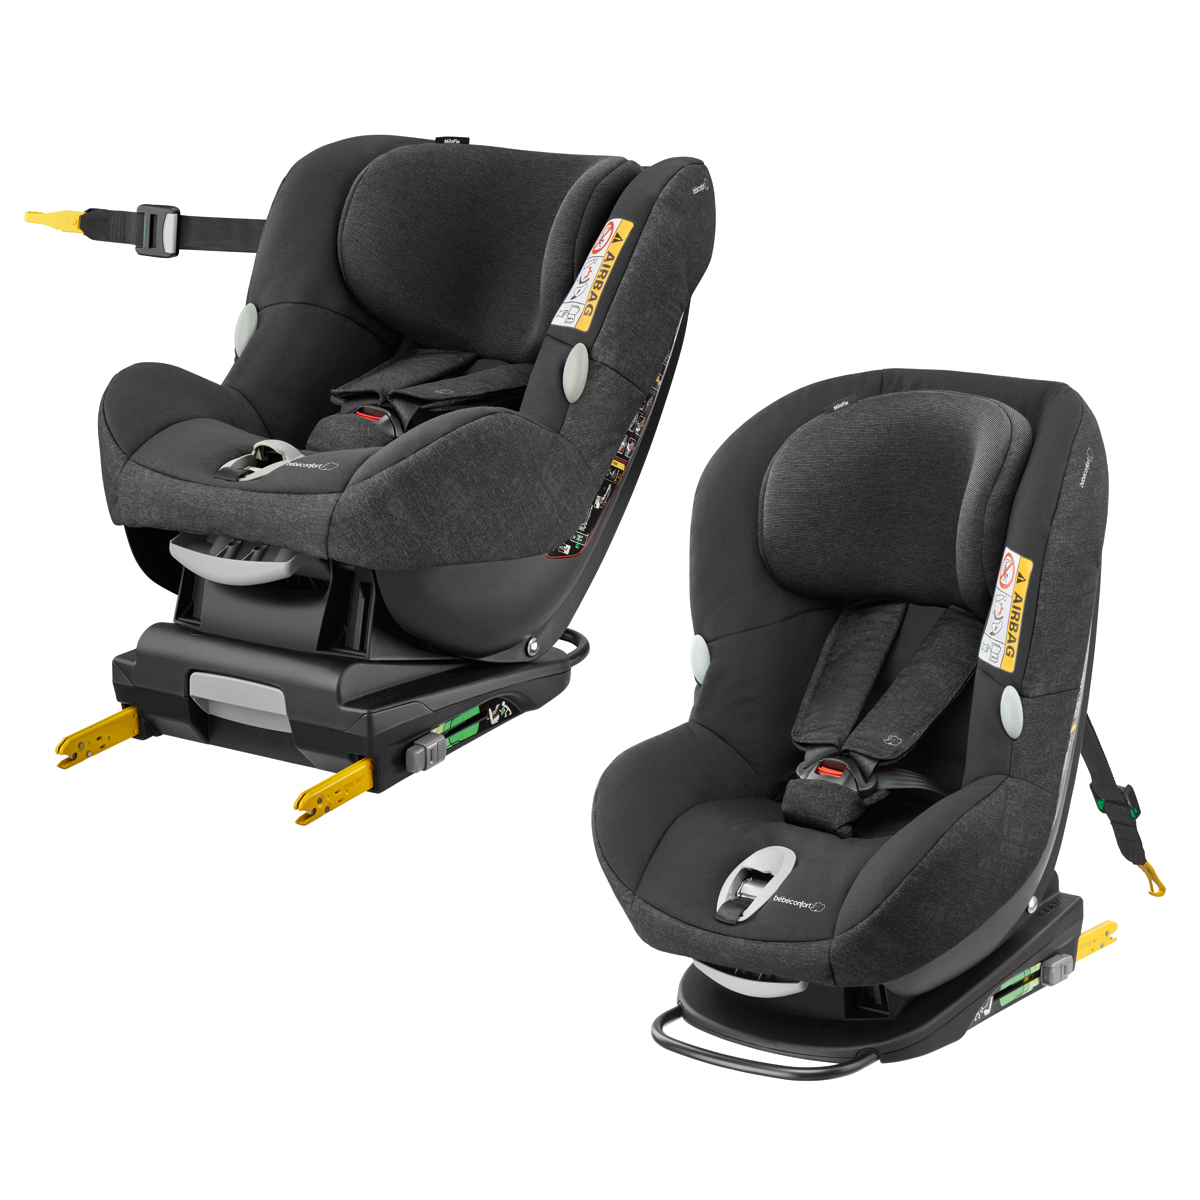 b b confort si ge auto milofix isofix groupe 0 1 nomad black si ge auto et coque b b. Black Bedroom Furniture Sets. Home Design Ideas